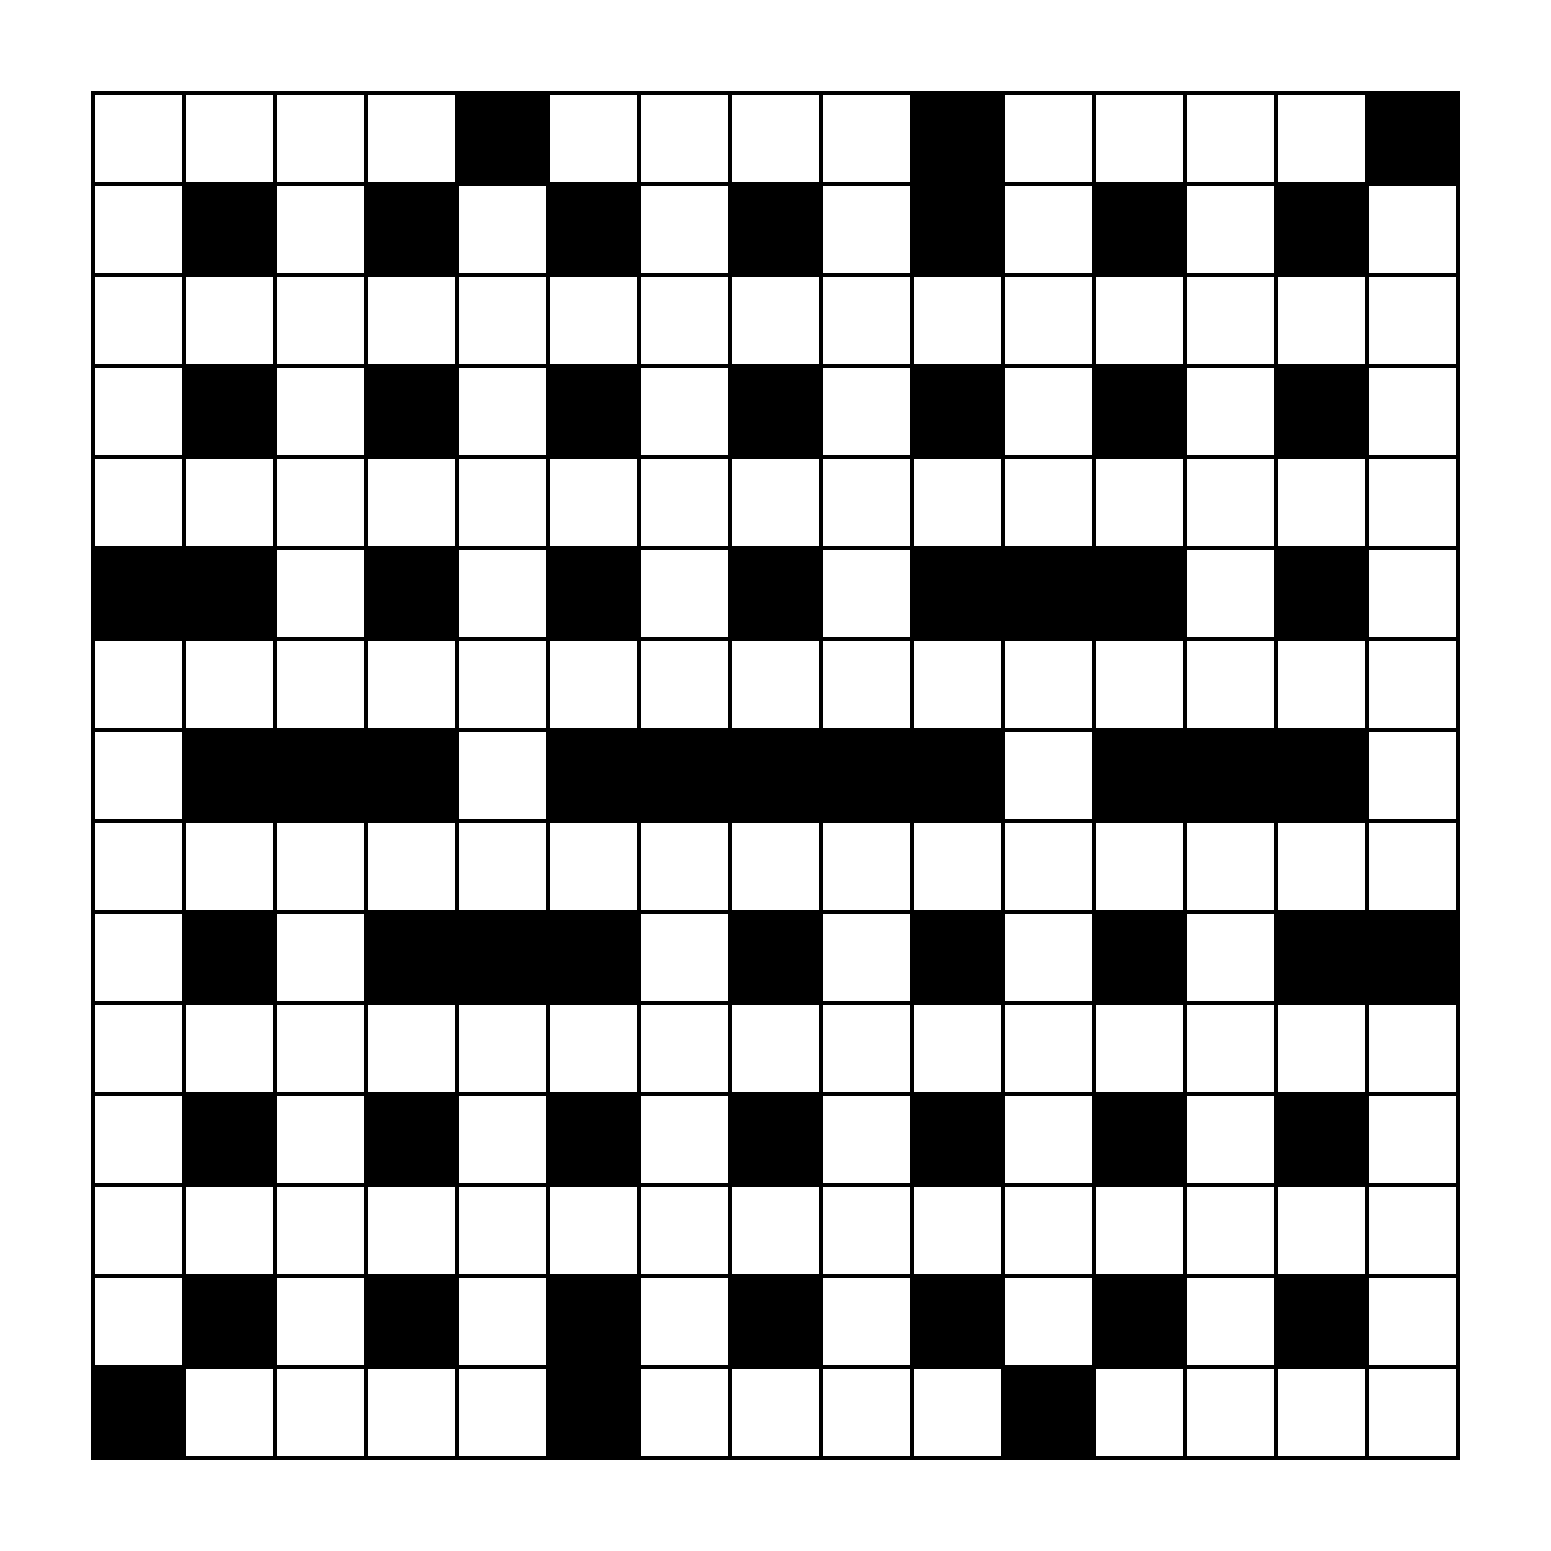 blank word wall template free - the nation cryptic crossword forum october 2013